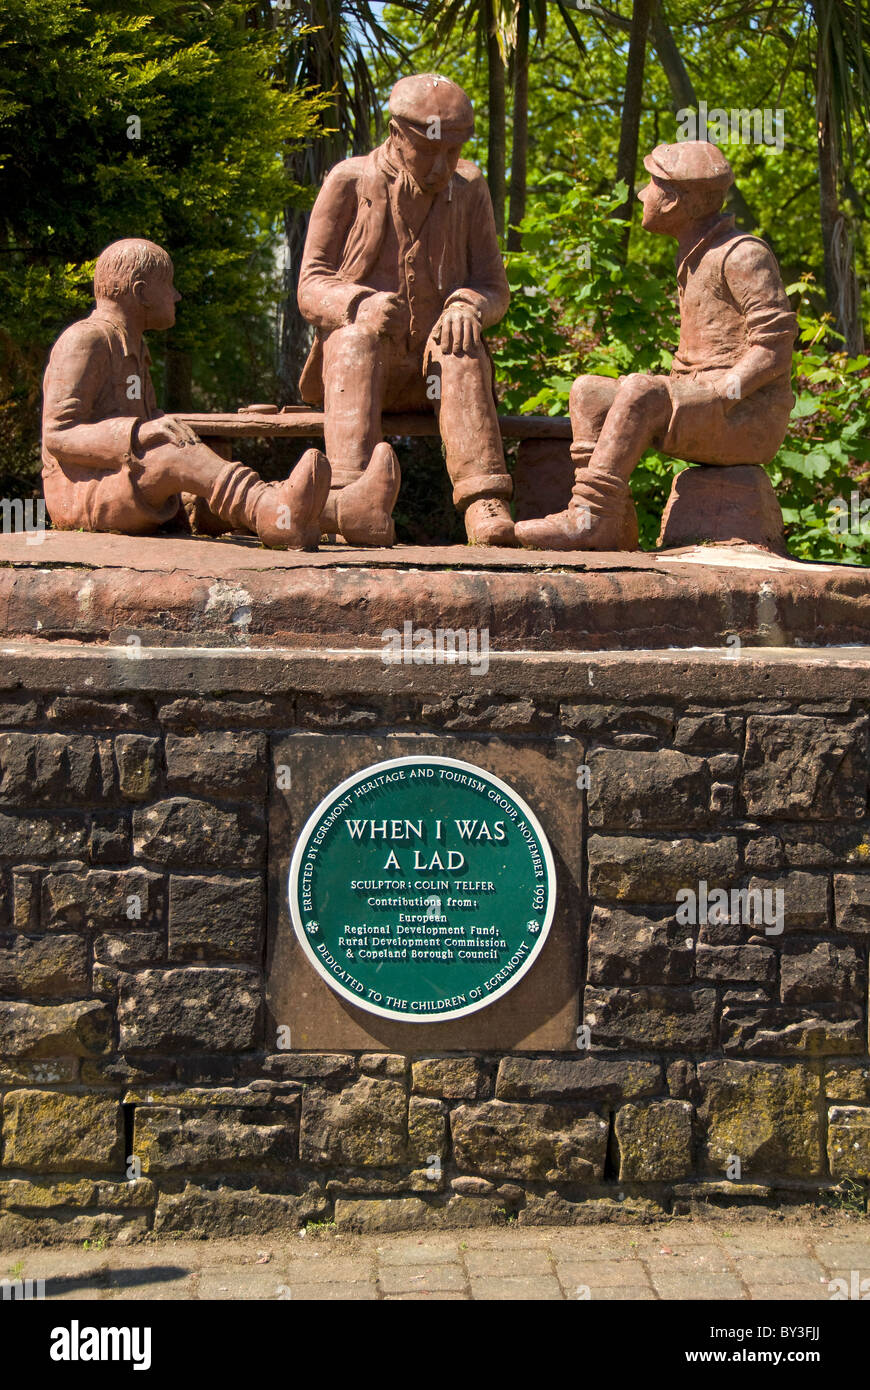 Statue of a man with children, 'When I was a lad', Egremont, Lake District National Park, Cumbria, England, - Stock Image